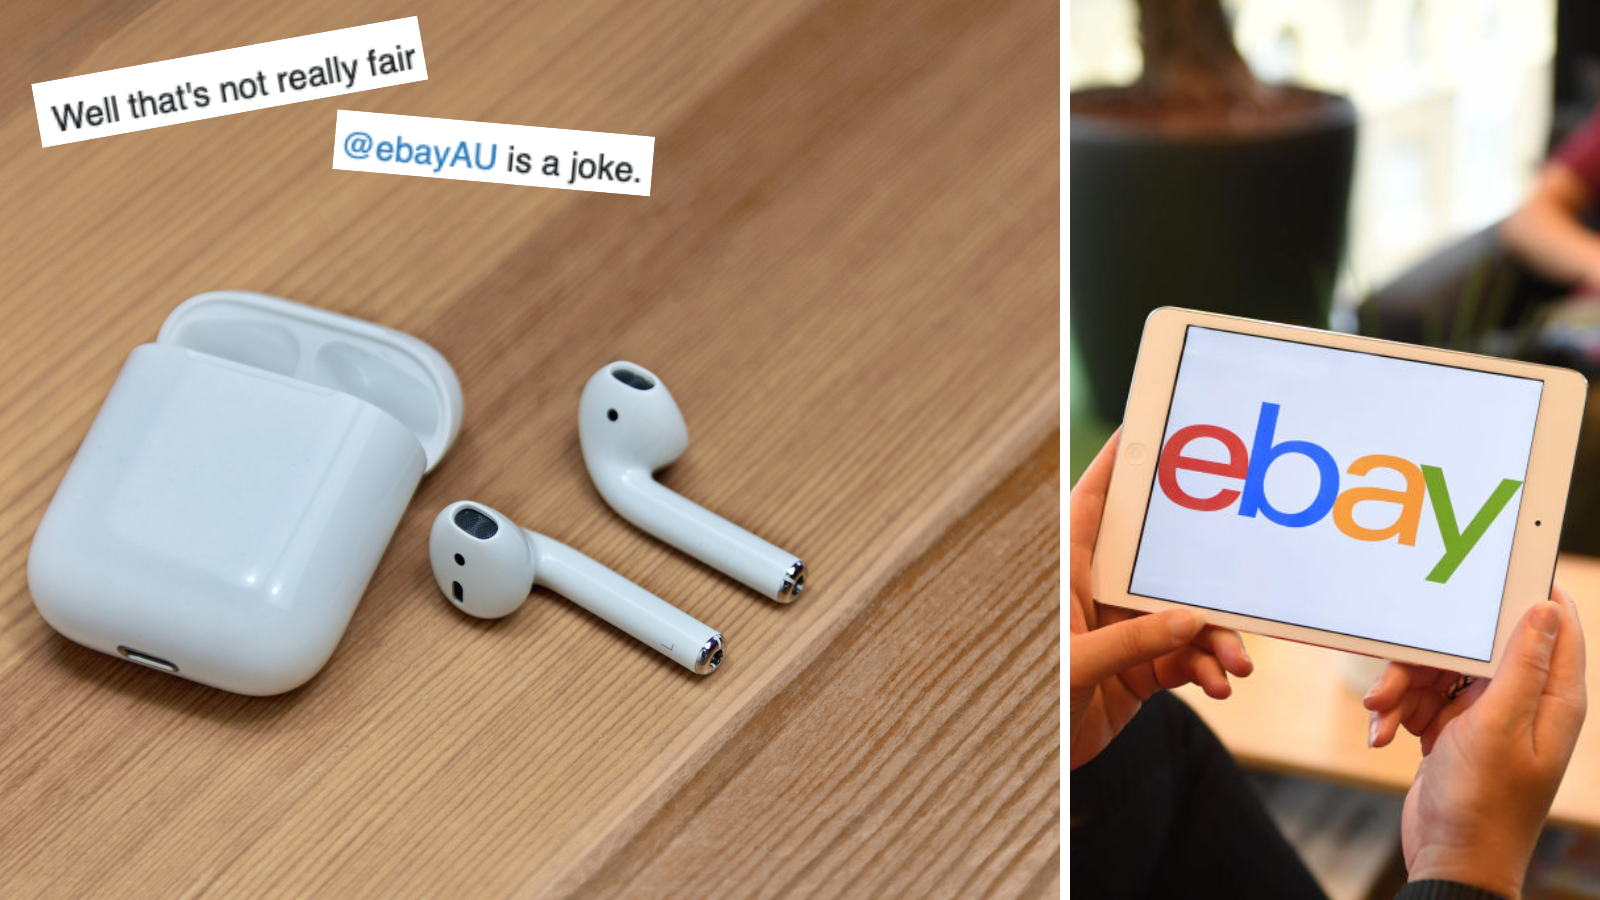 Ebay S 99 Airpod Sale Real Or Clickbait